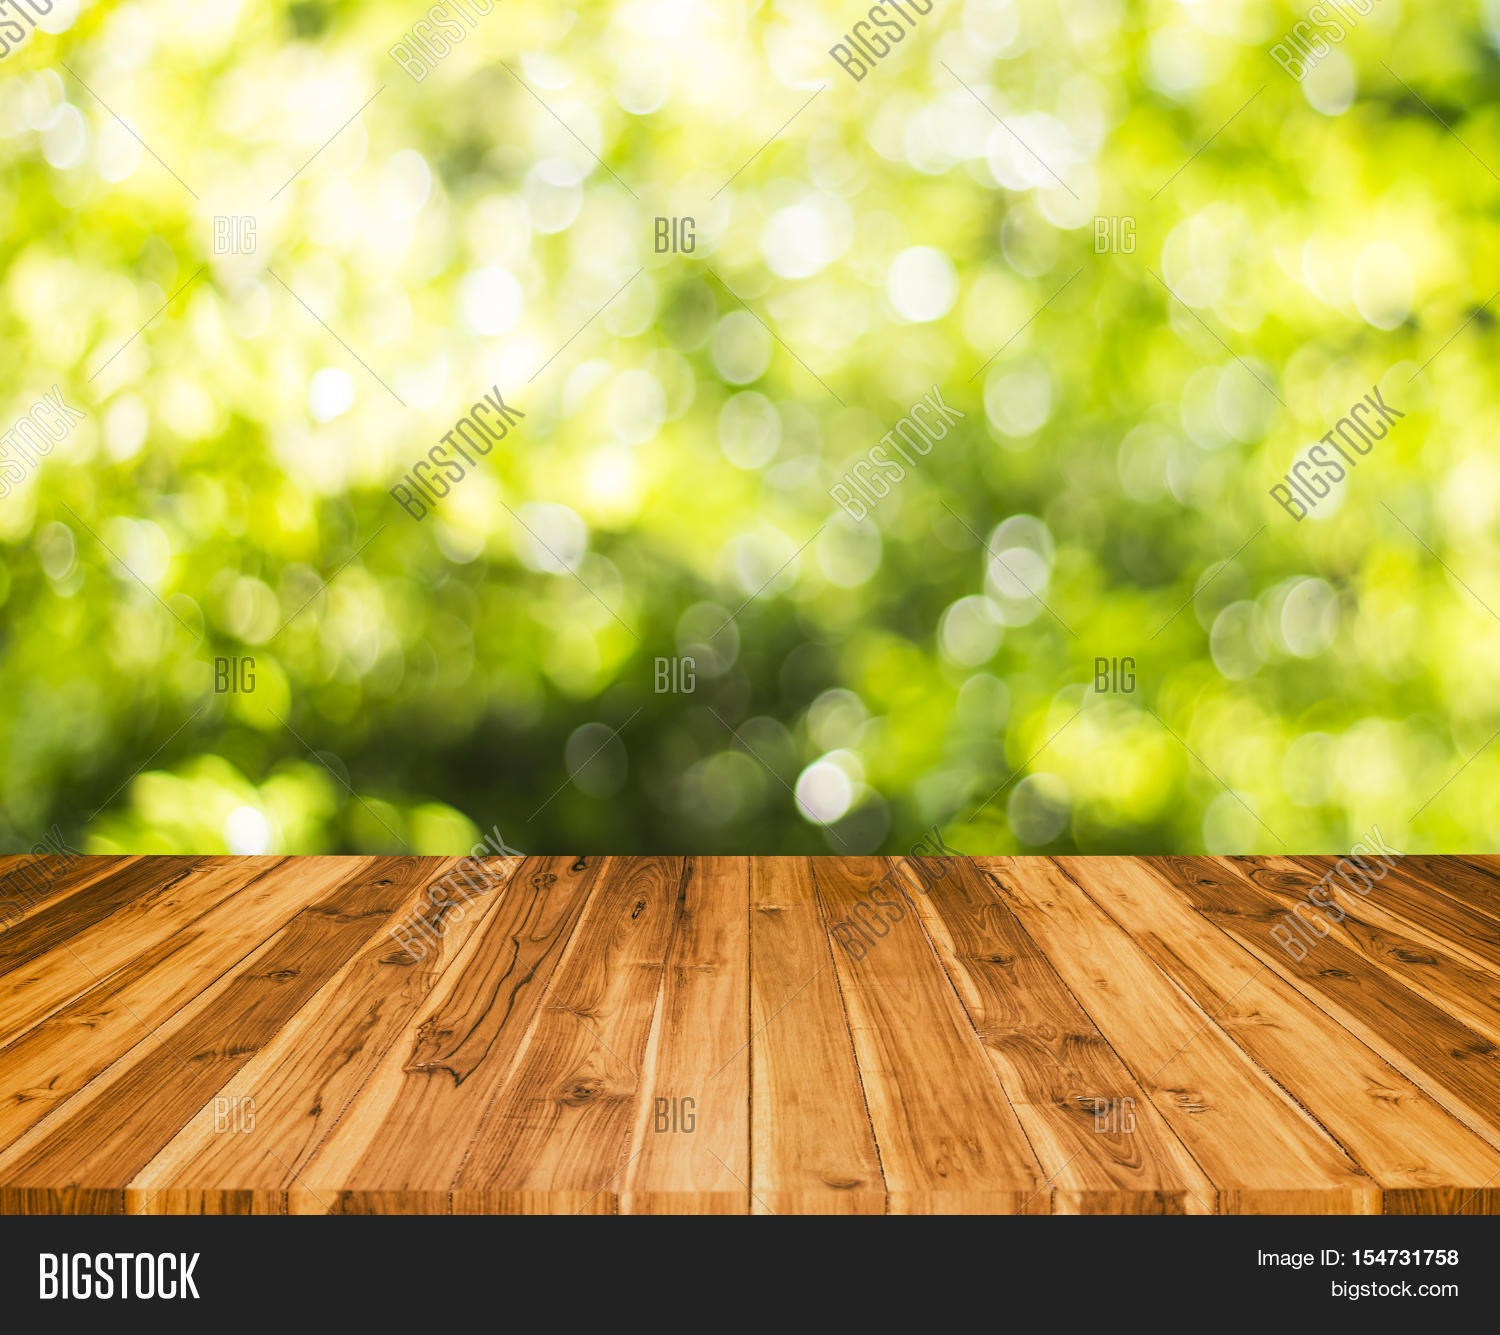 Background image table - Wood Table With Blur Tree Background Abstract Blur Background Wood Table For Display Your Product